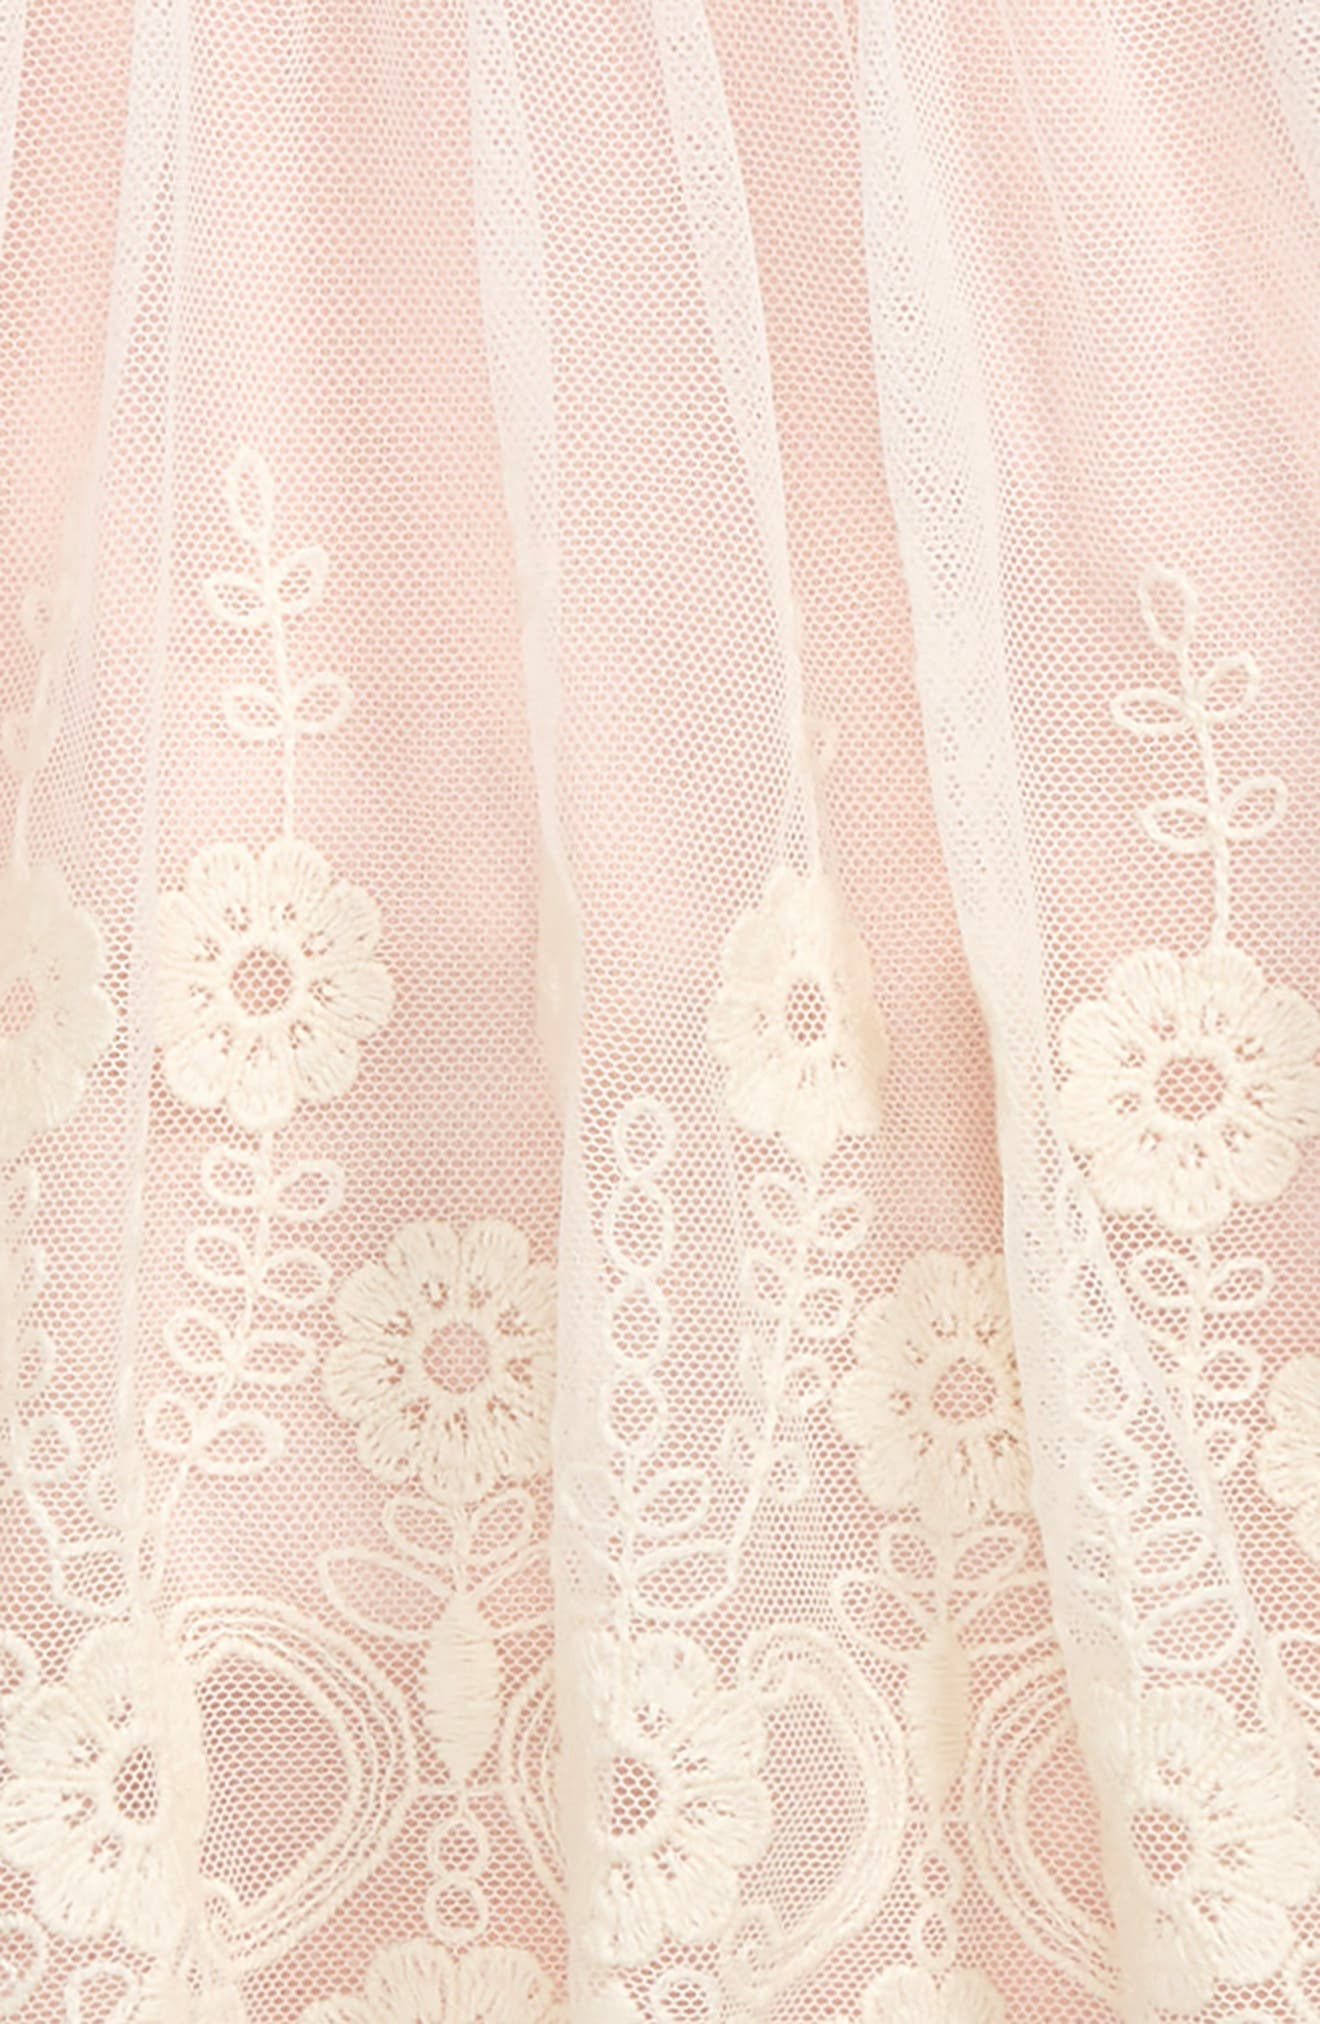 Flower Embroidered Sleeveless Dress,                             Alternate thumbnail 2, color,                             Ivory / Pink